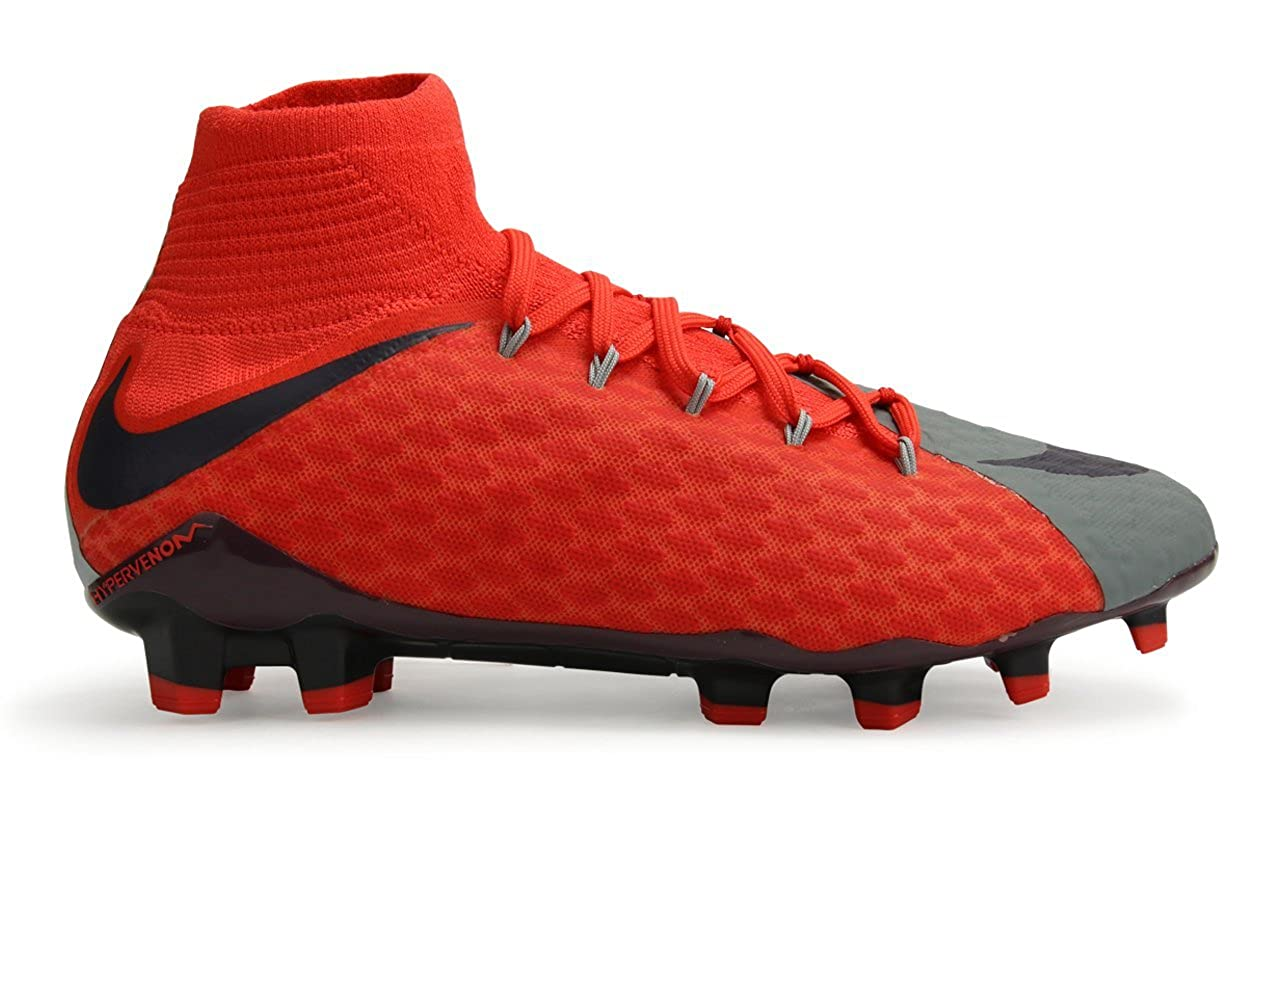 super popular 41fdb b1a13 Amazon.com | Nike Women's Hypervenom Phatal Iii Dynamic Fit ...